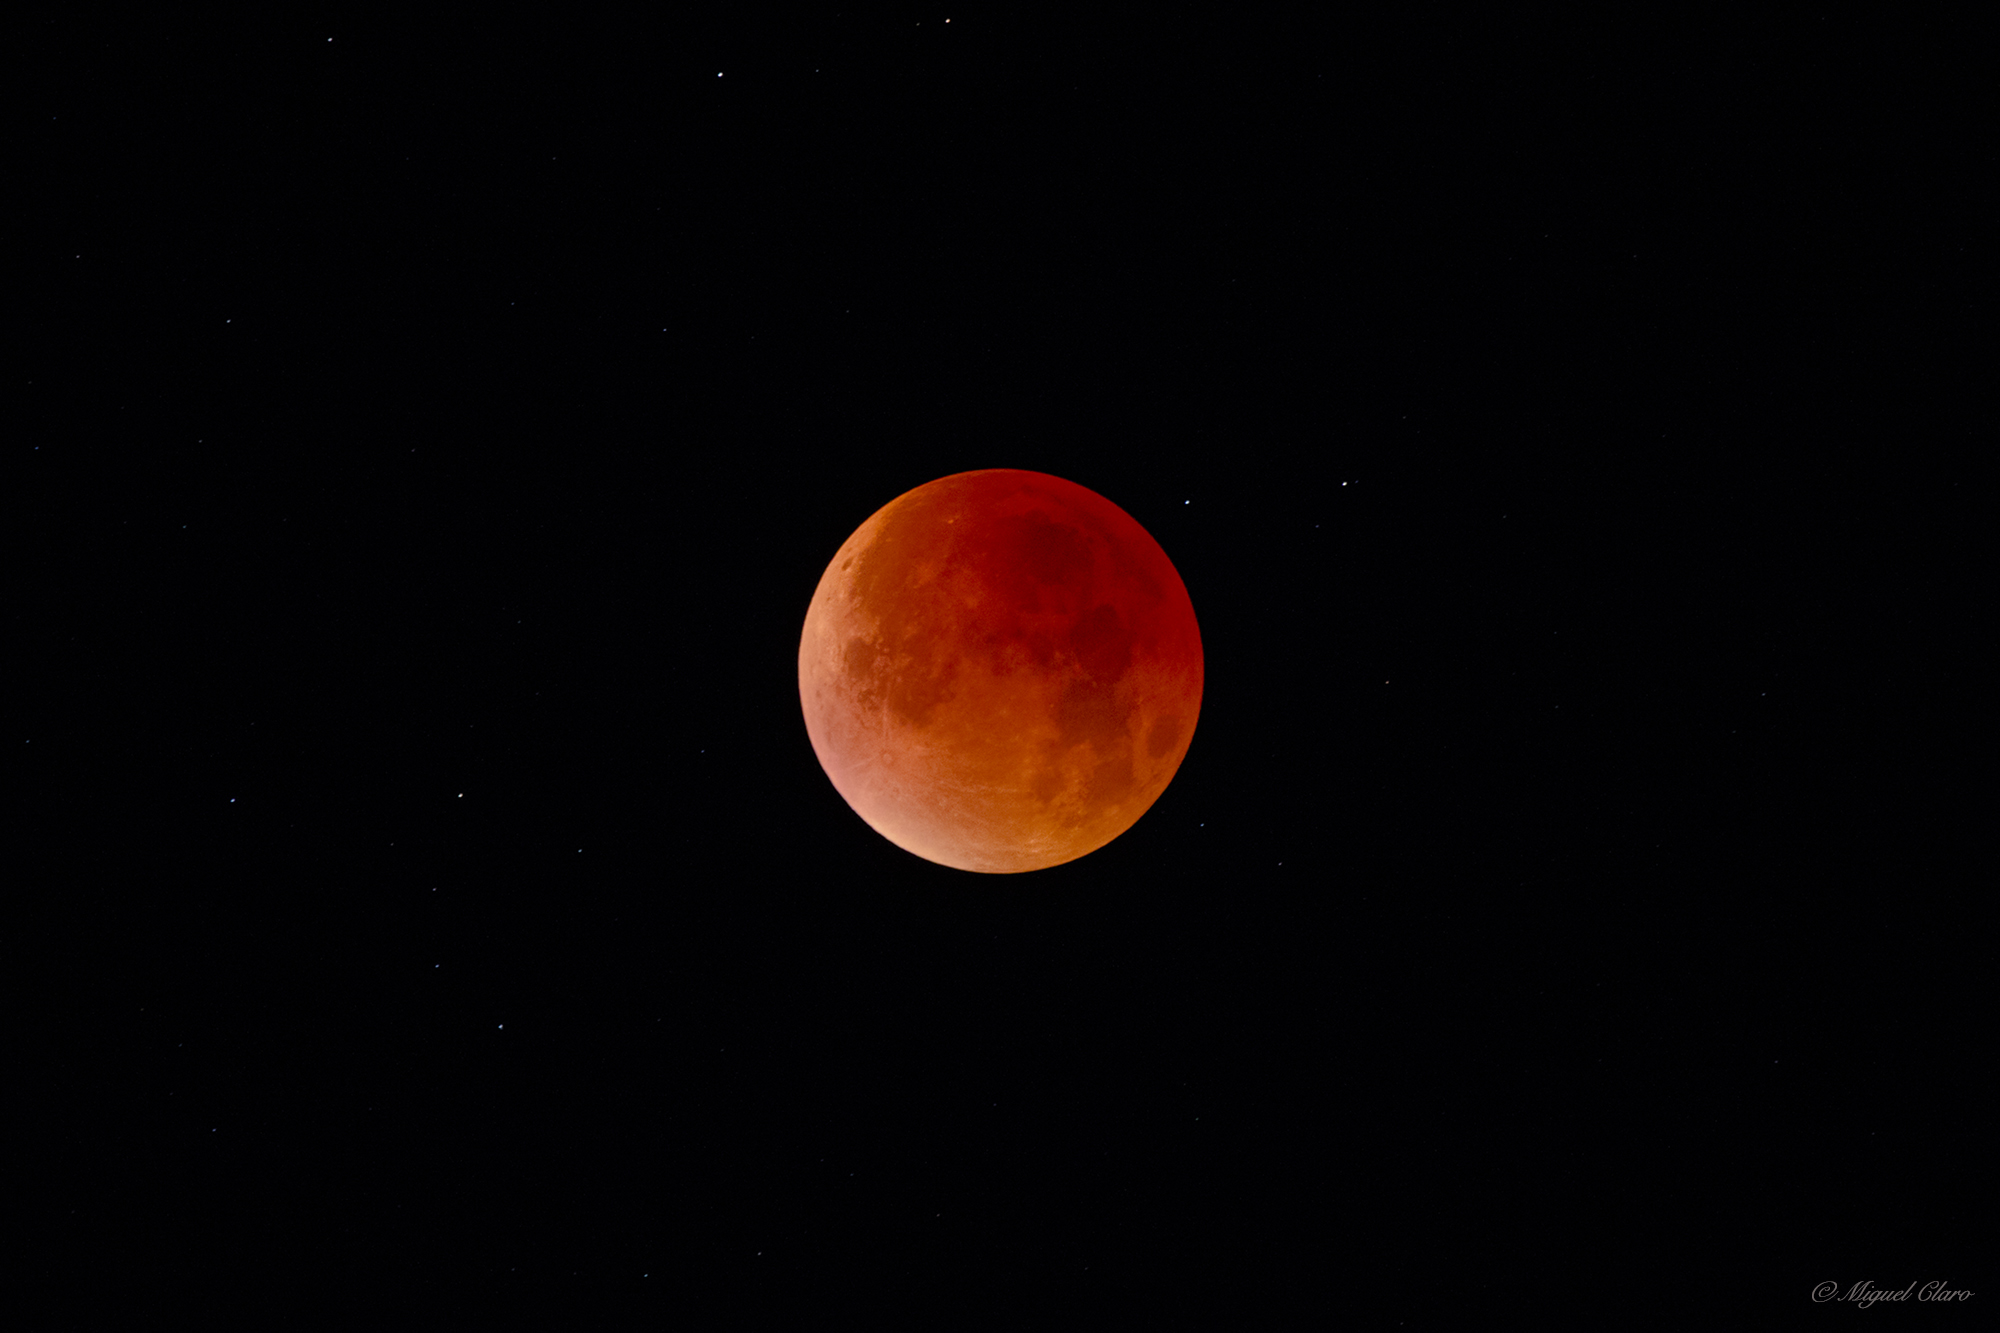 <h5>The Red Moment of the Totality</h5>